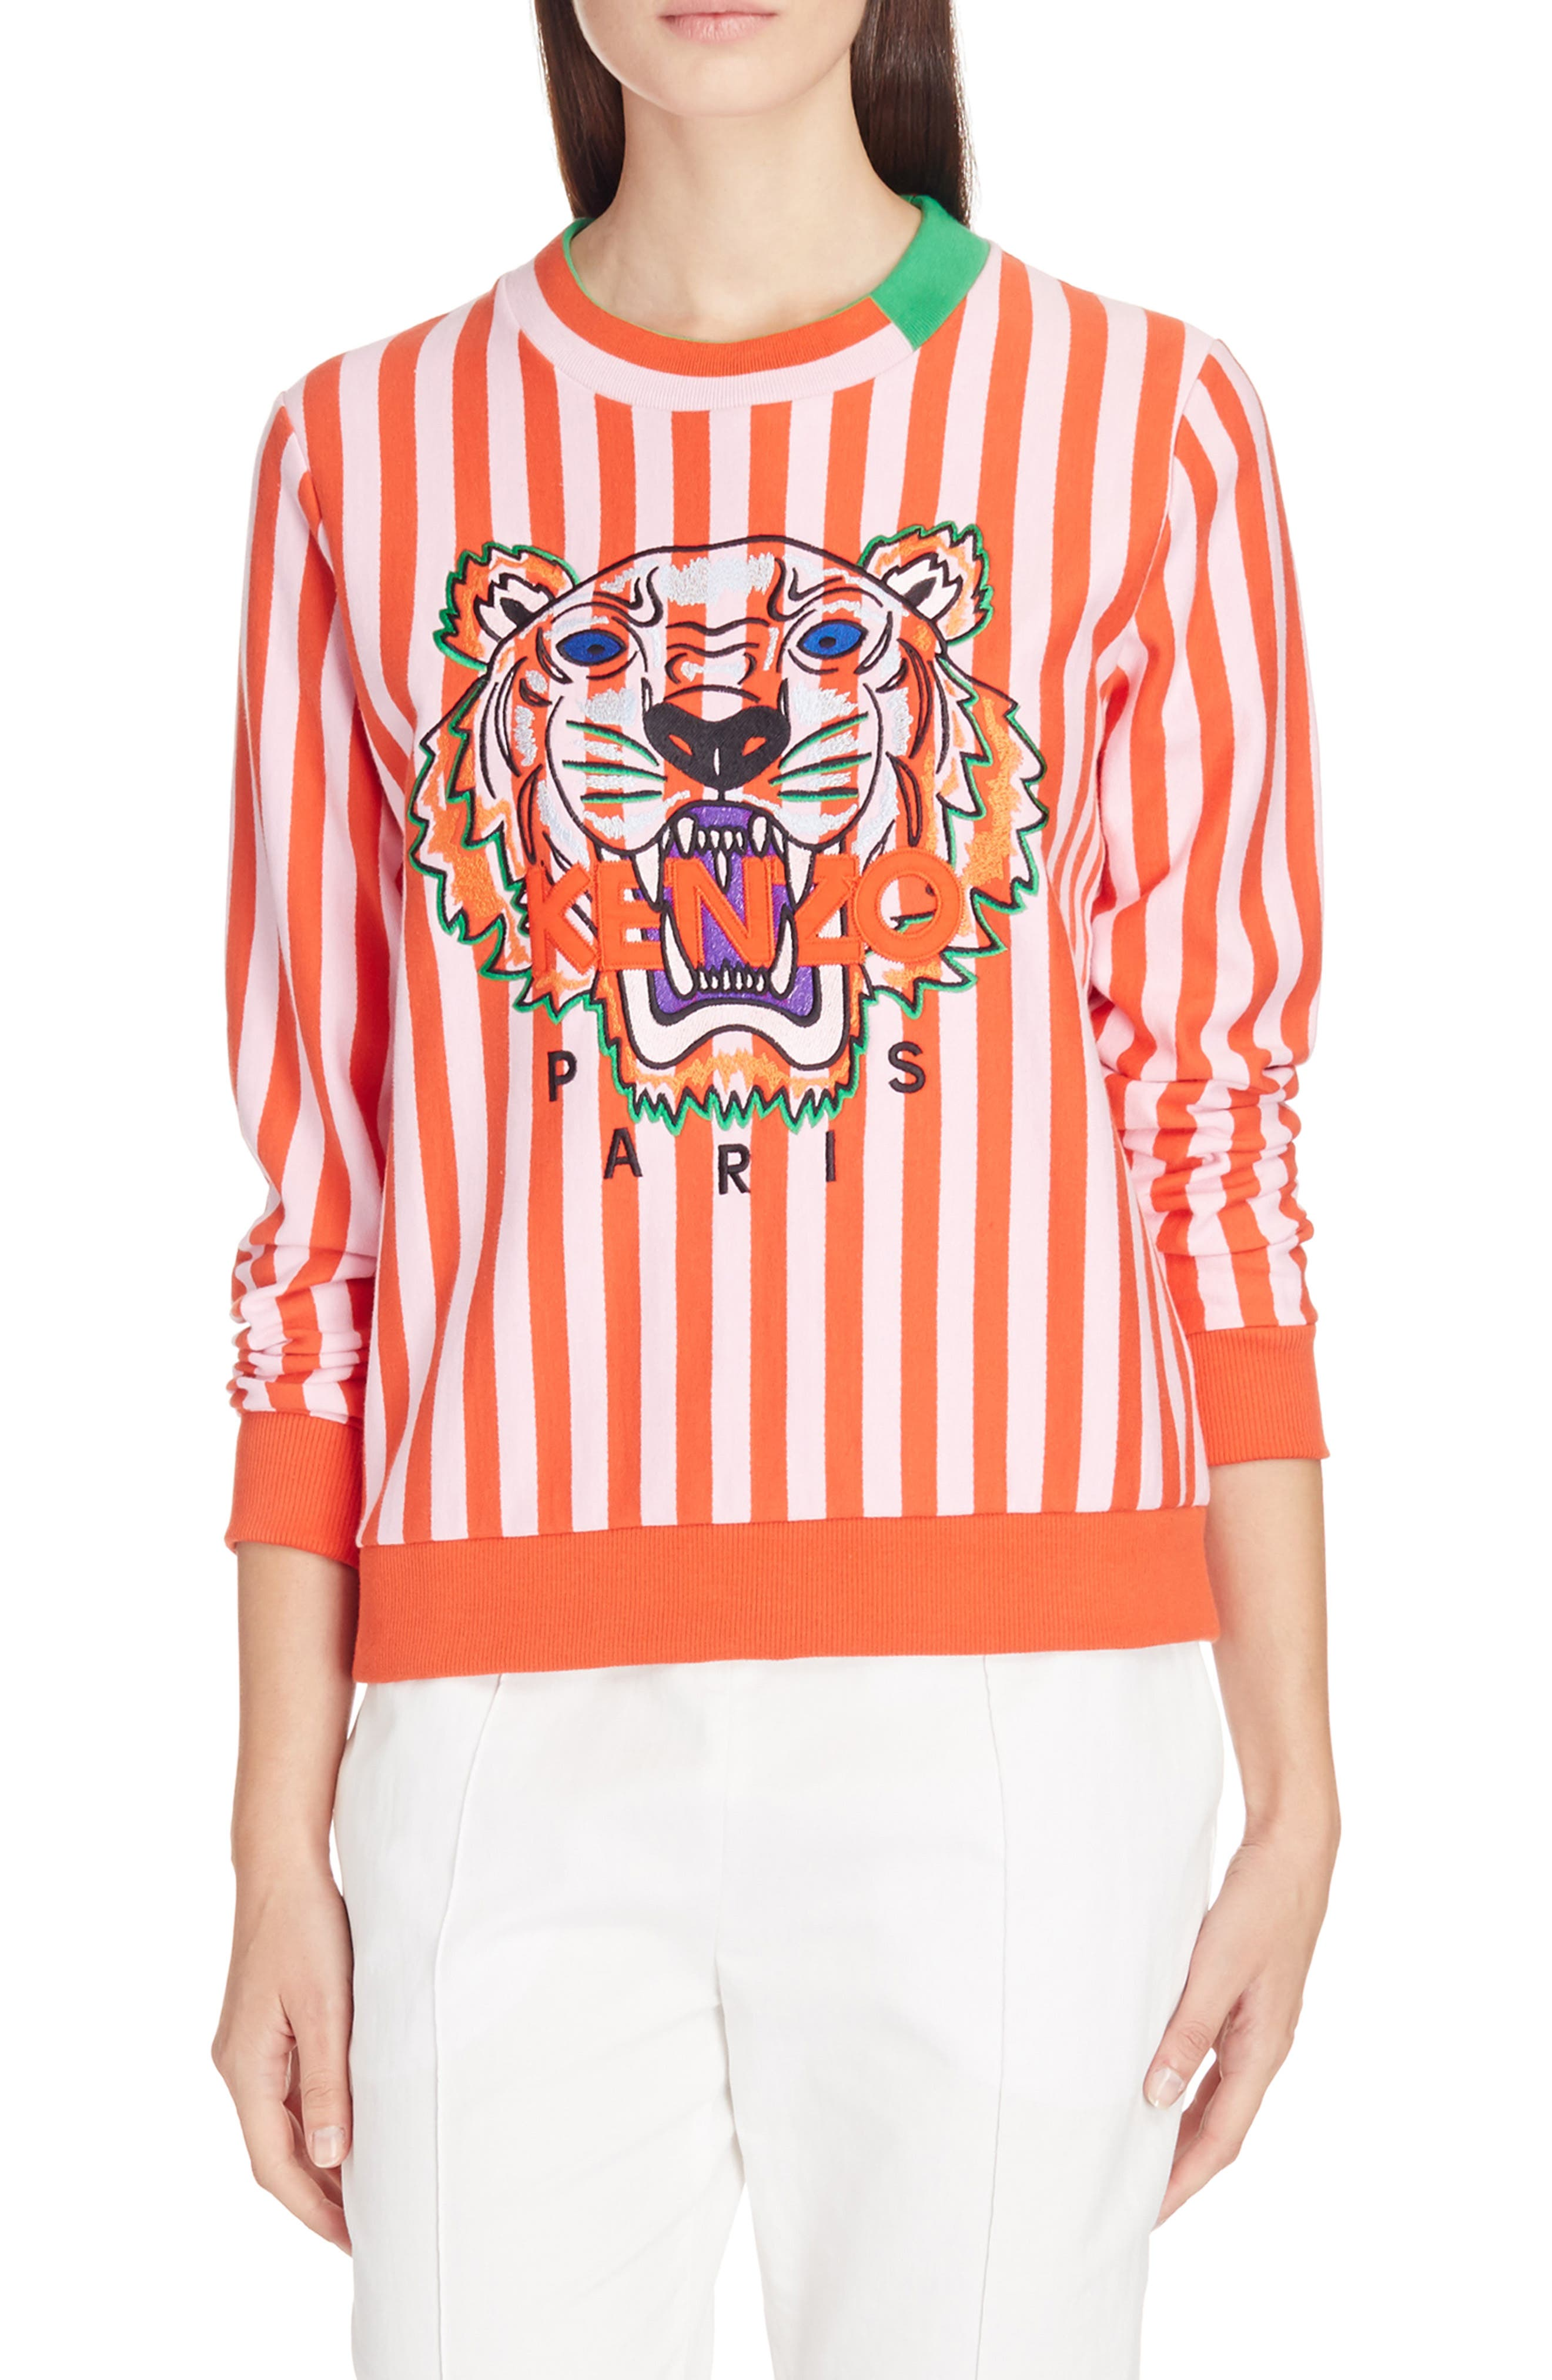 KENZO Embroidered Tiger Stripe Sweatshirt